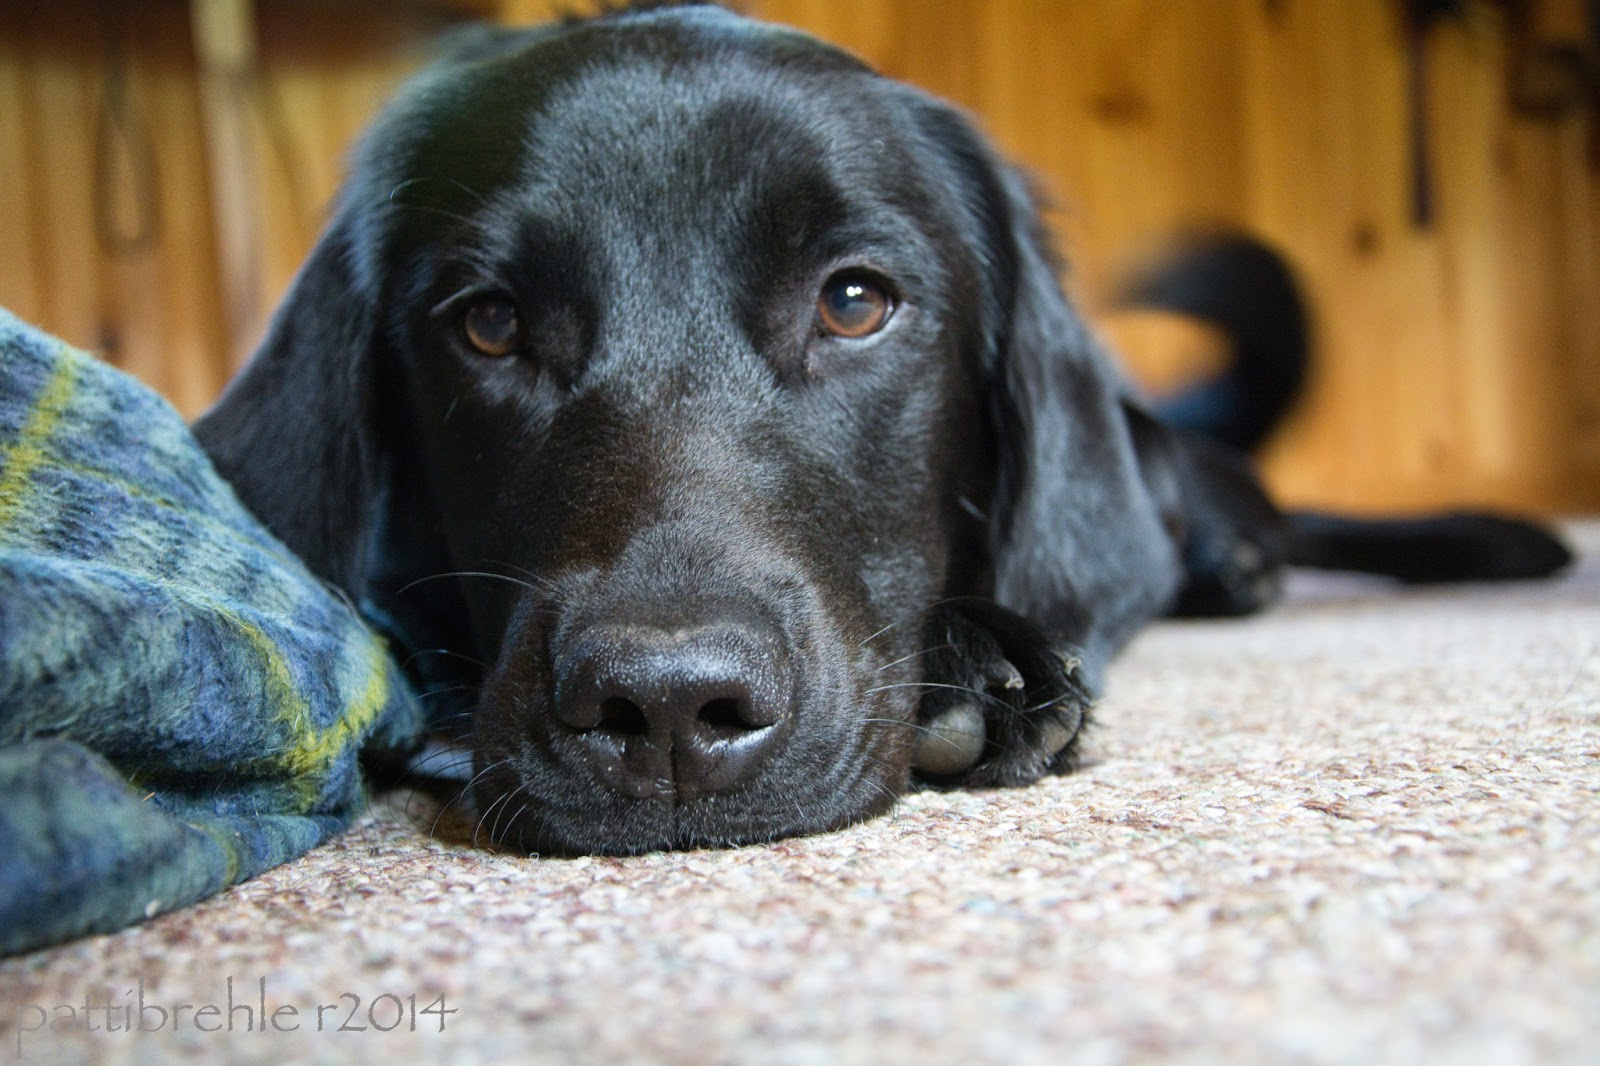 A floor level shot of a black lab/golden mis puppy. She is looking right into the camera, the floor is a berber carpet. There is a blue and green plaid dog bed to the left. The background is out of focus and it is a pine wall.